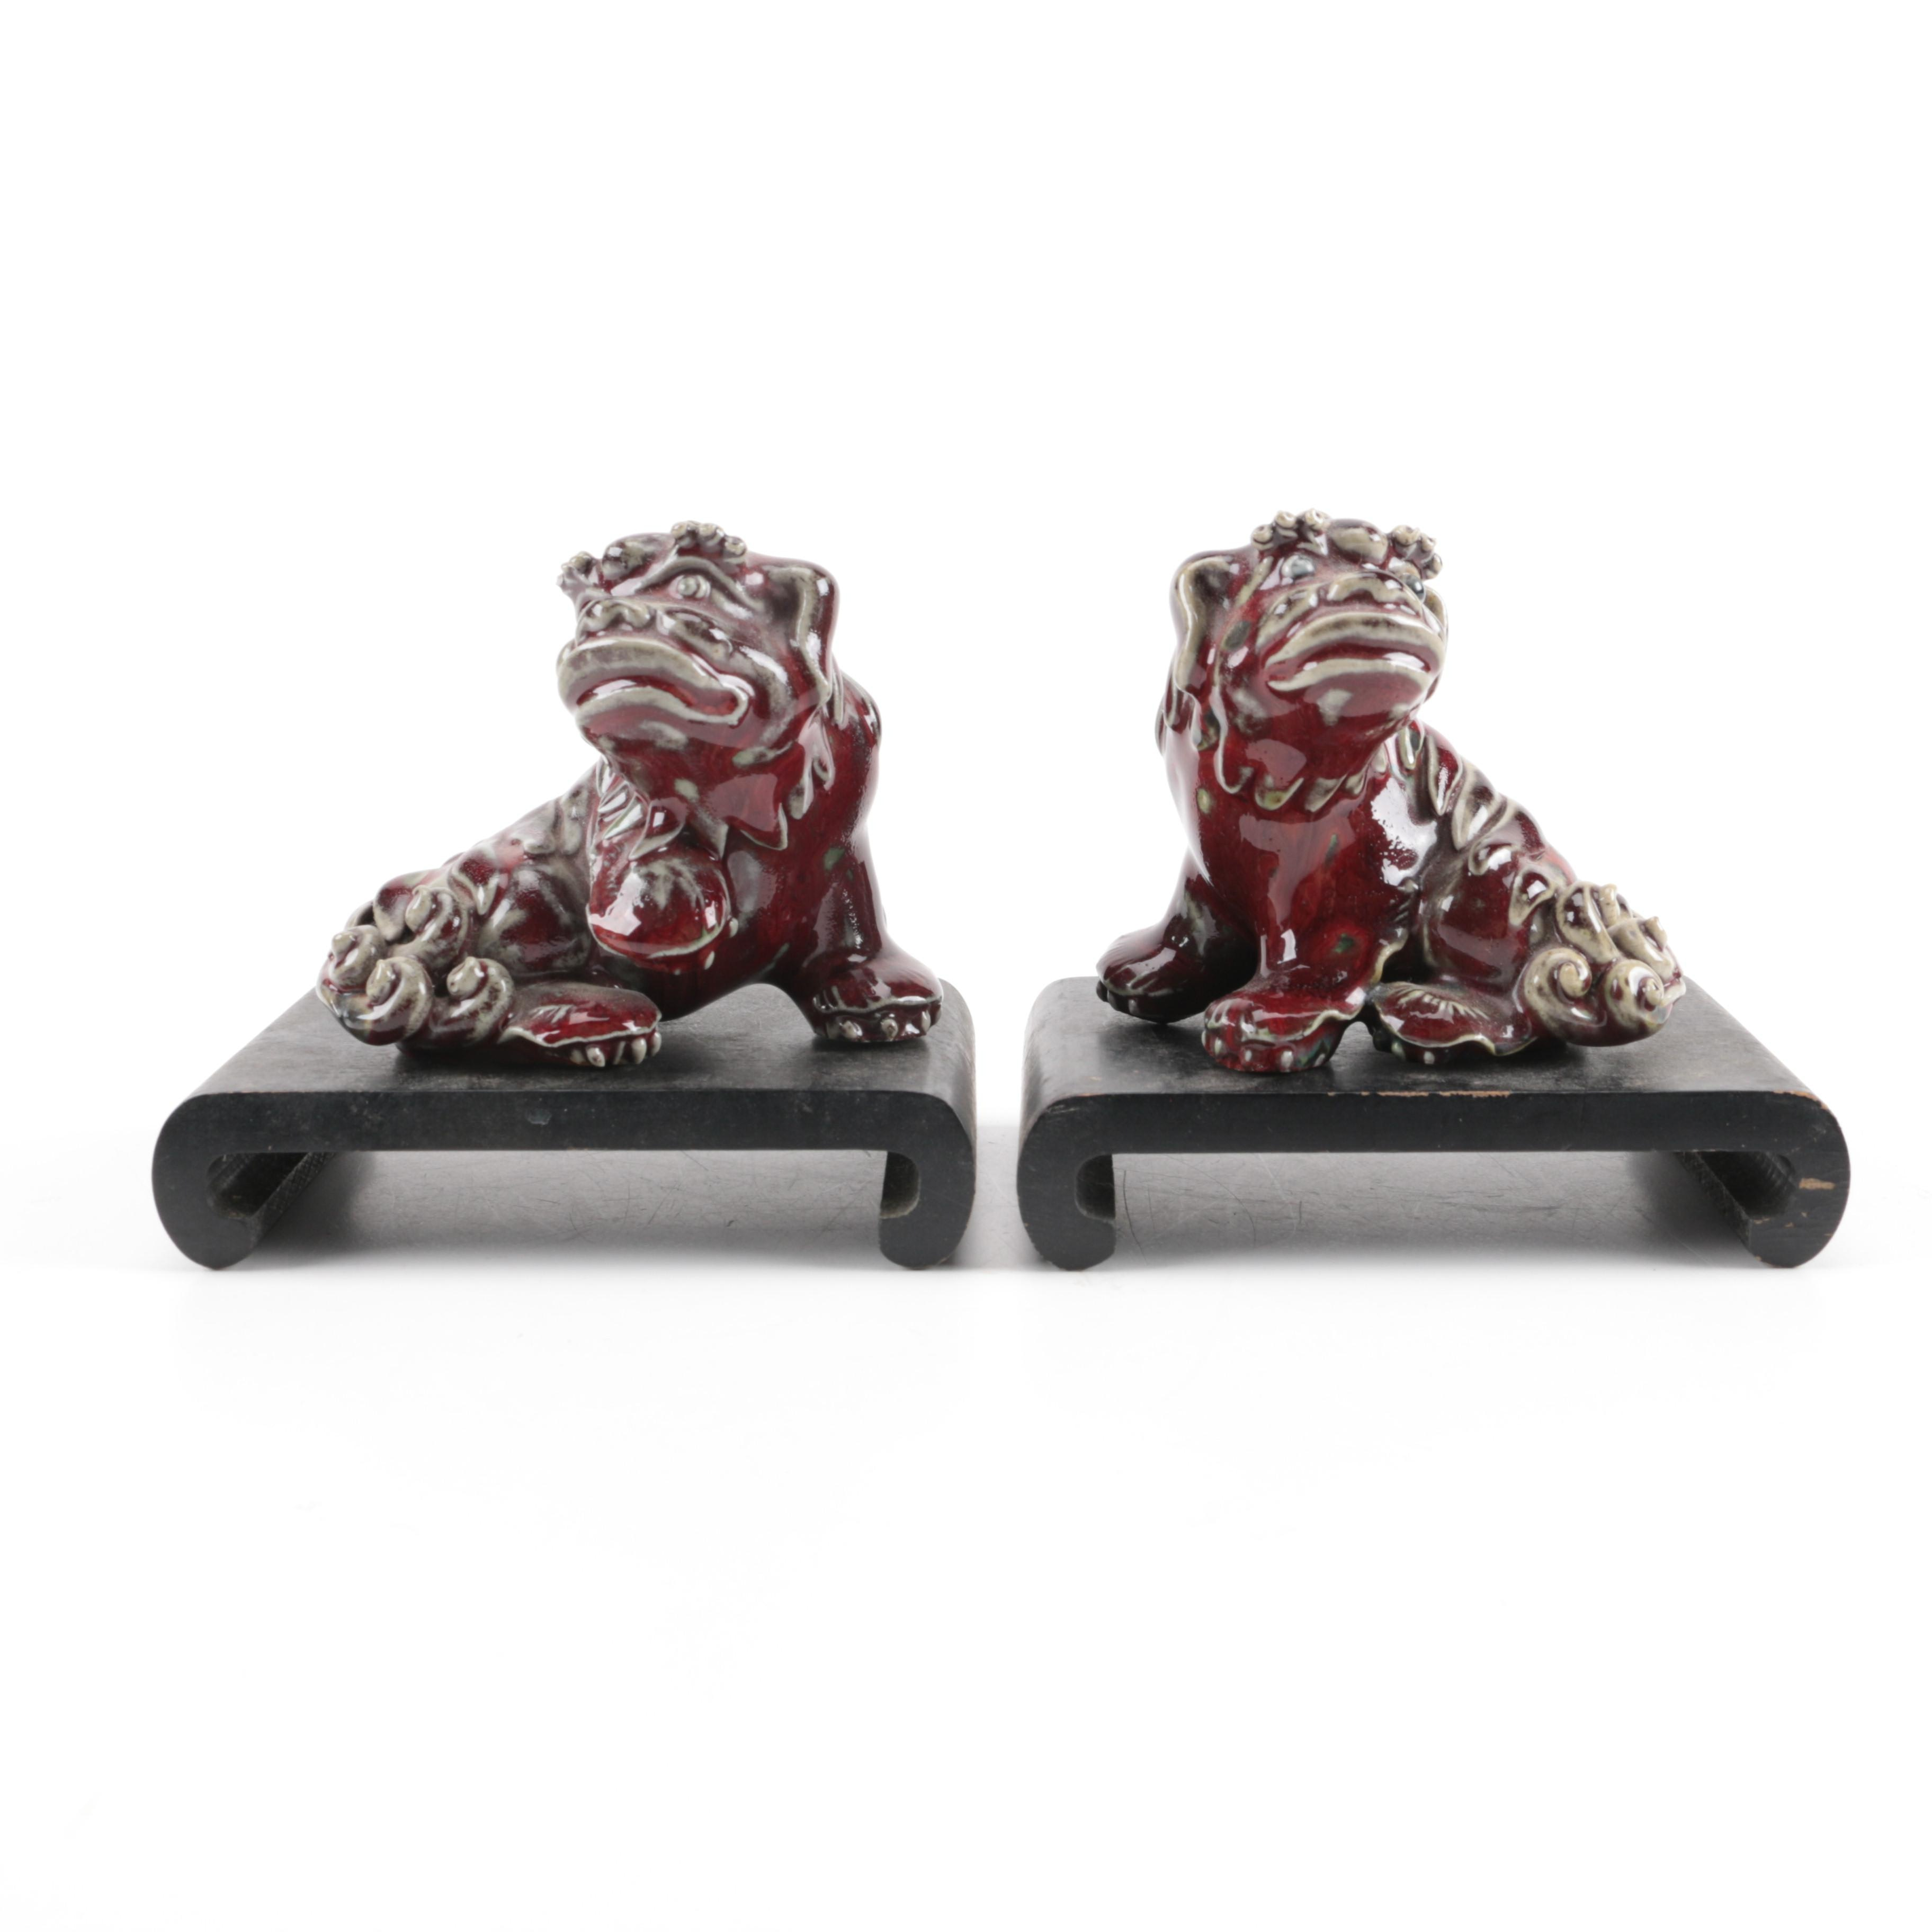 Pair of Ceramic Foo Dogs on Wooden Bases